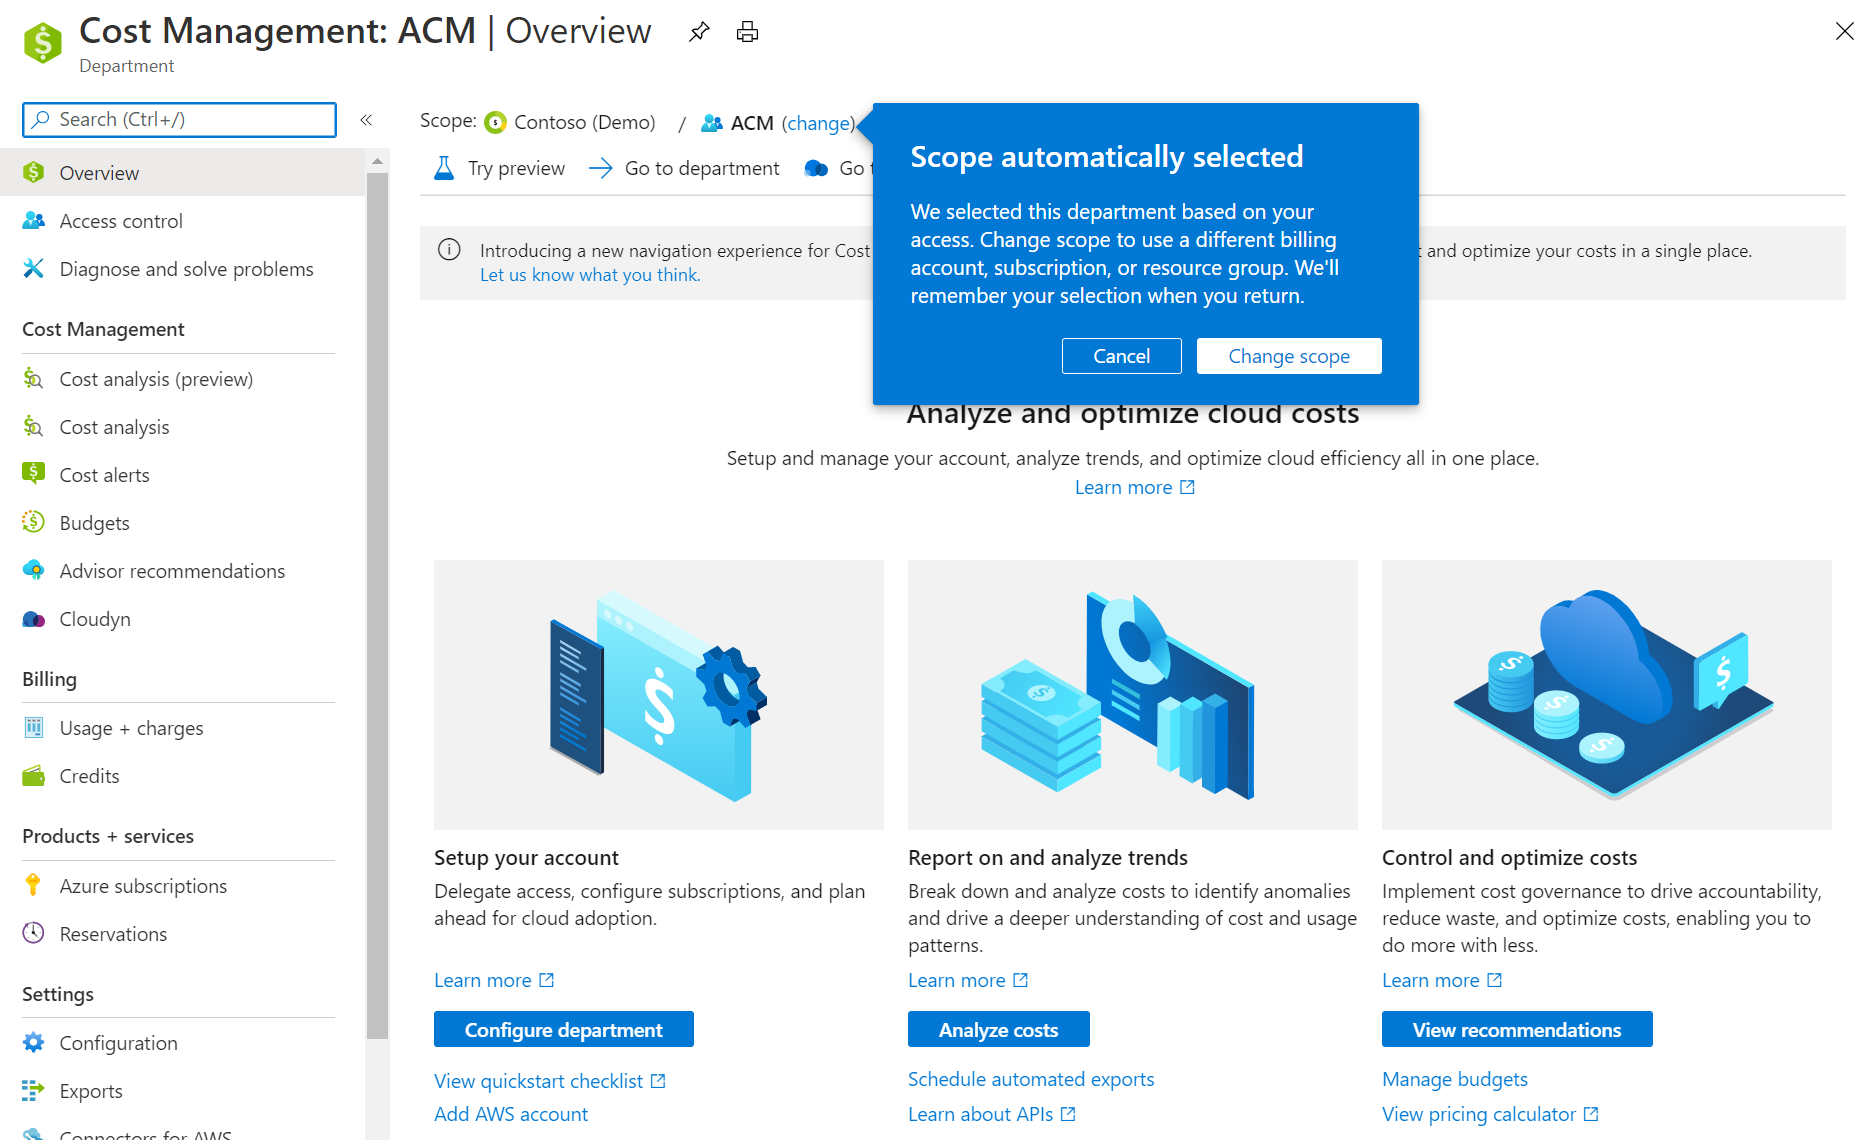 You will see a new notification when a scope is automatically selected the first time you use Azure Cost Management